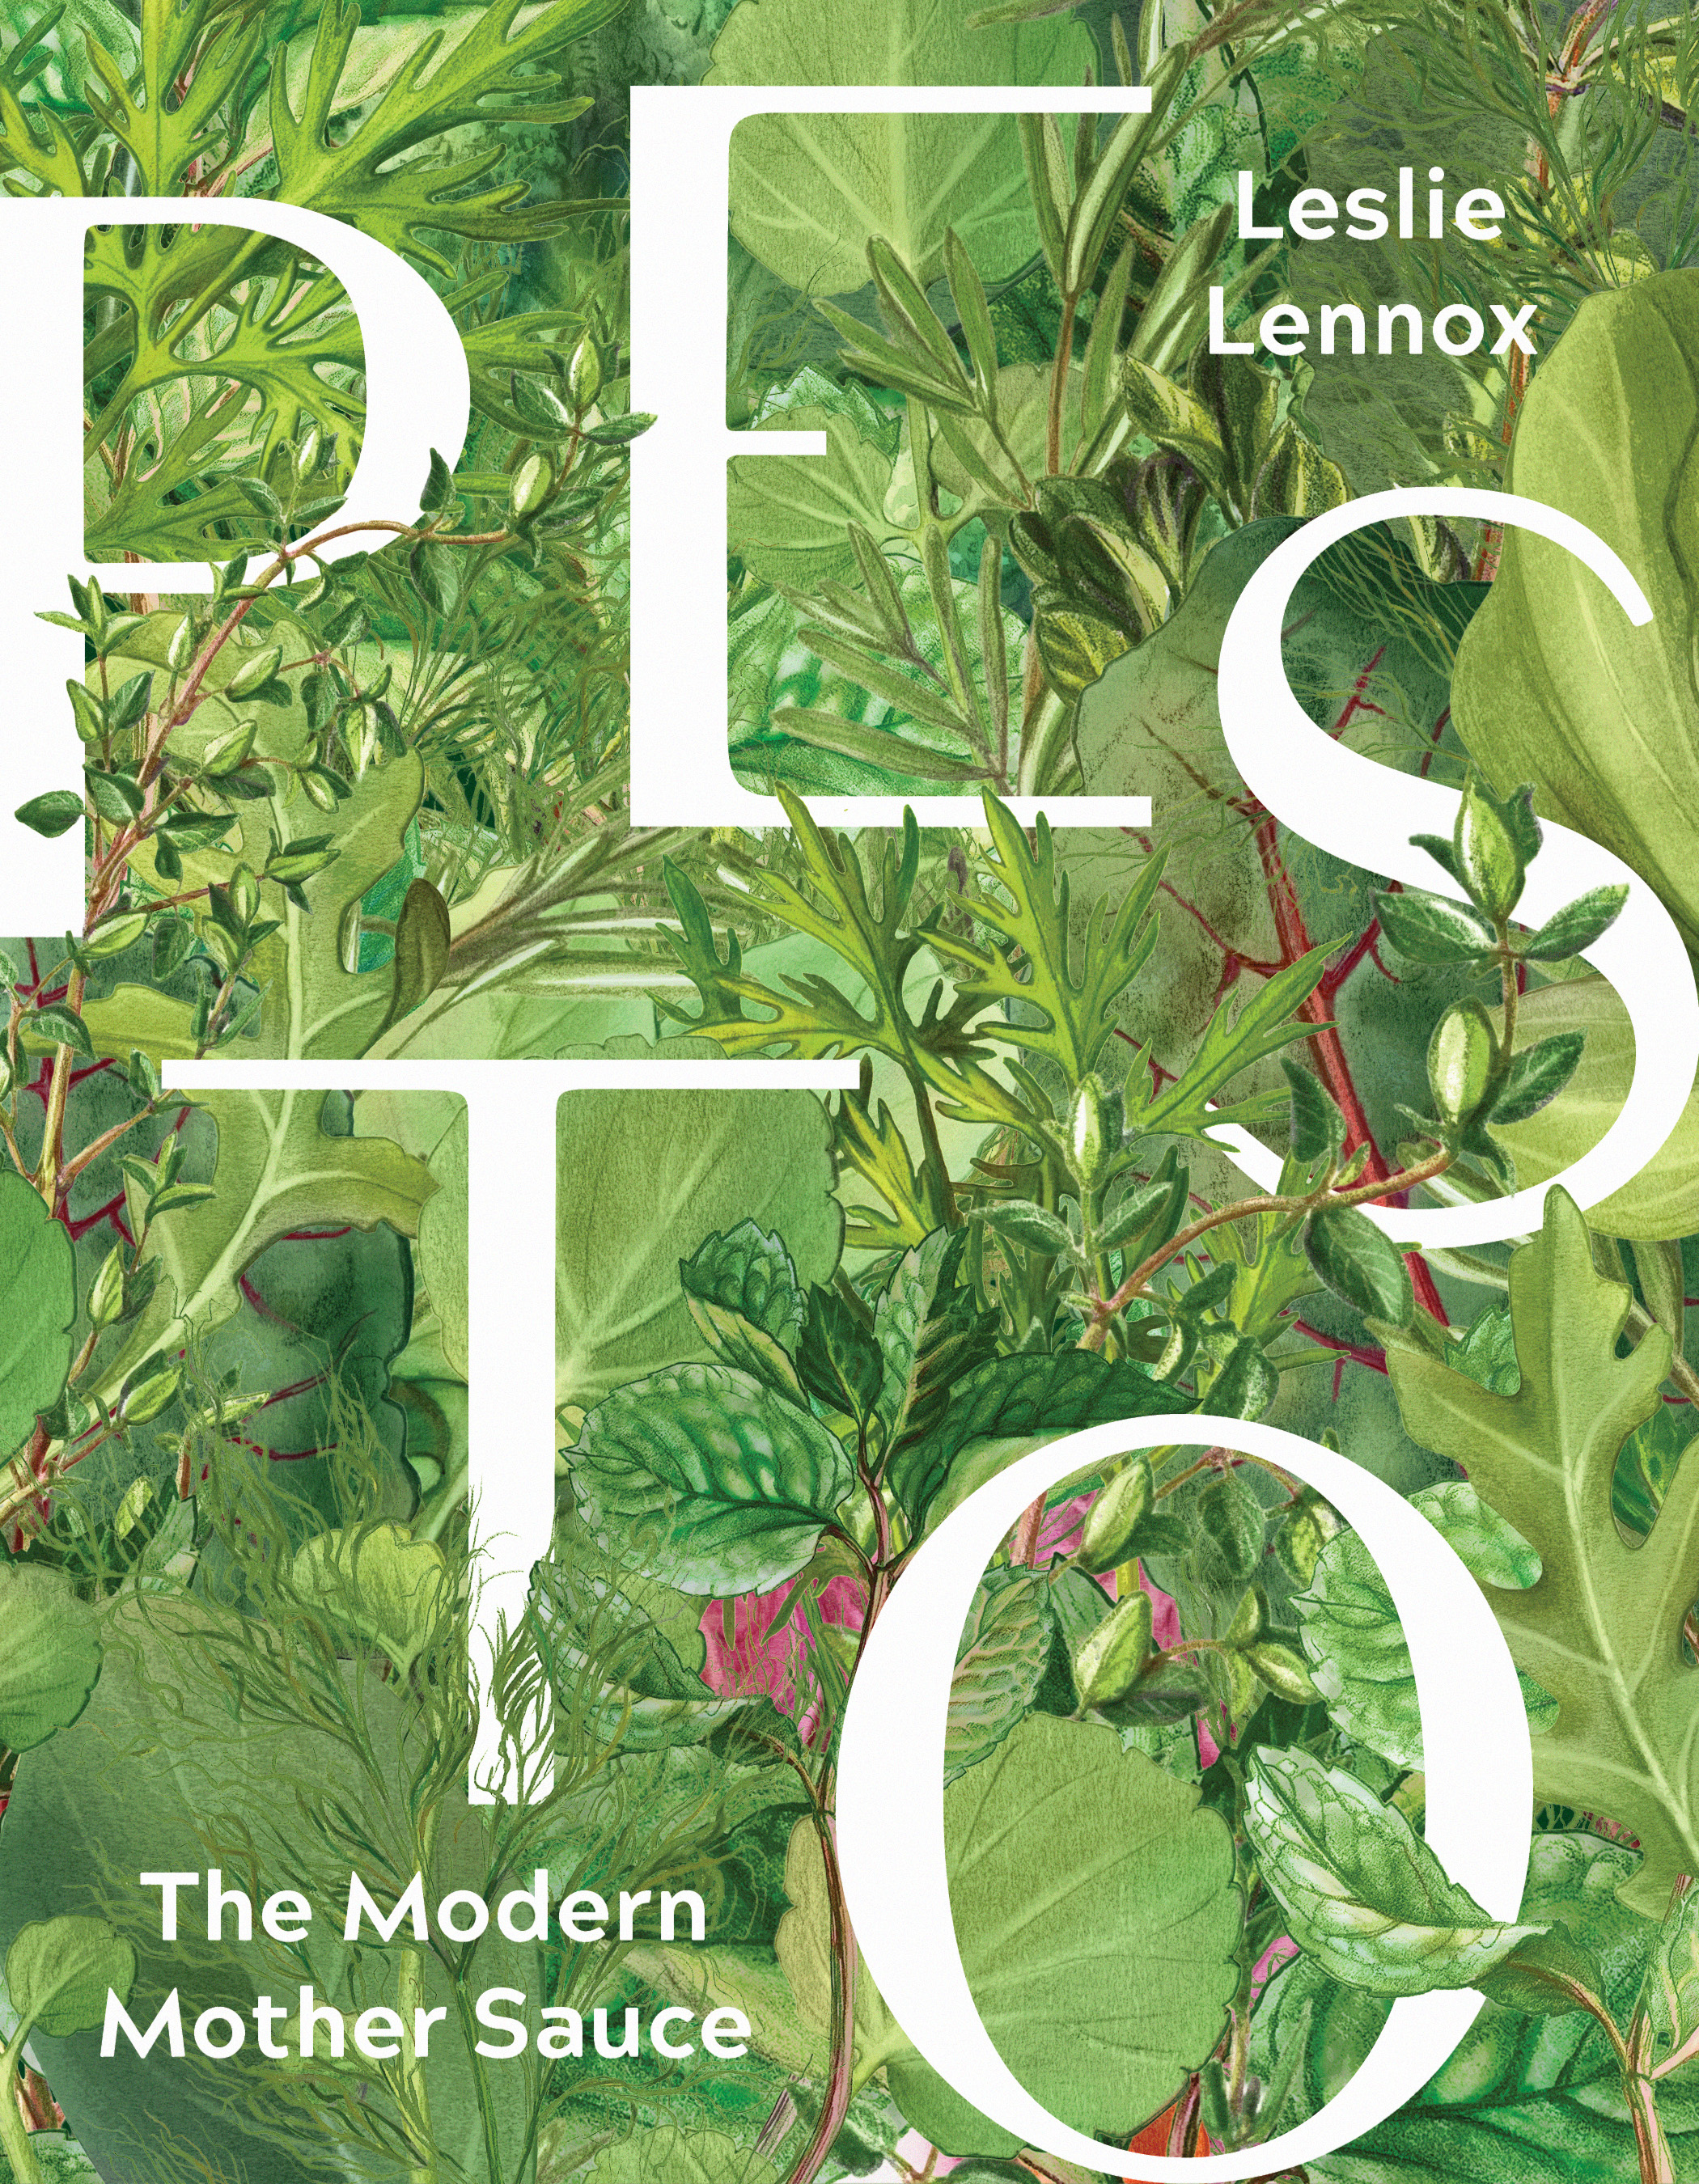 pesto book Lennox.jpg